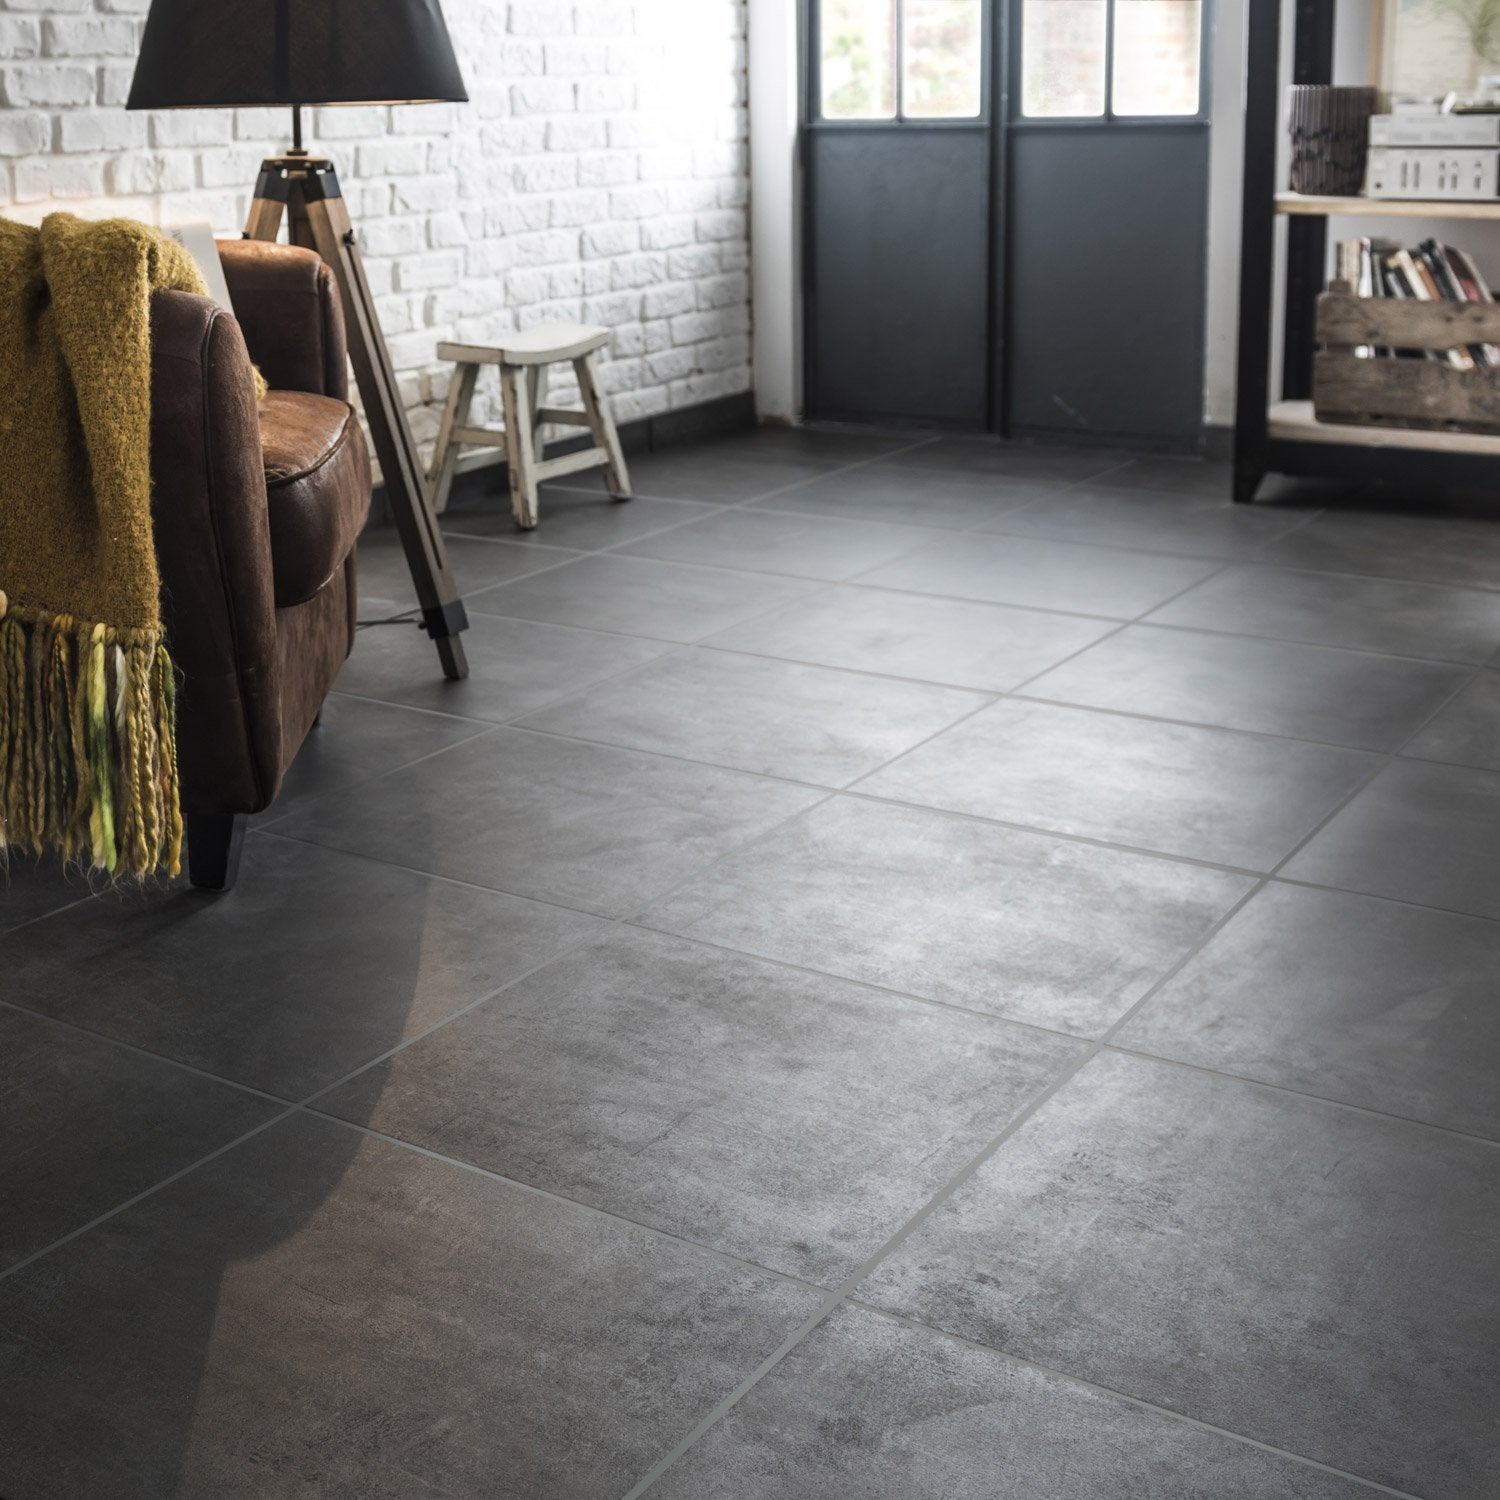 Carrelage sol anthracite alma x cm leroy merlin for Cuisine carrelage gris anthracite